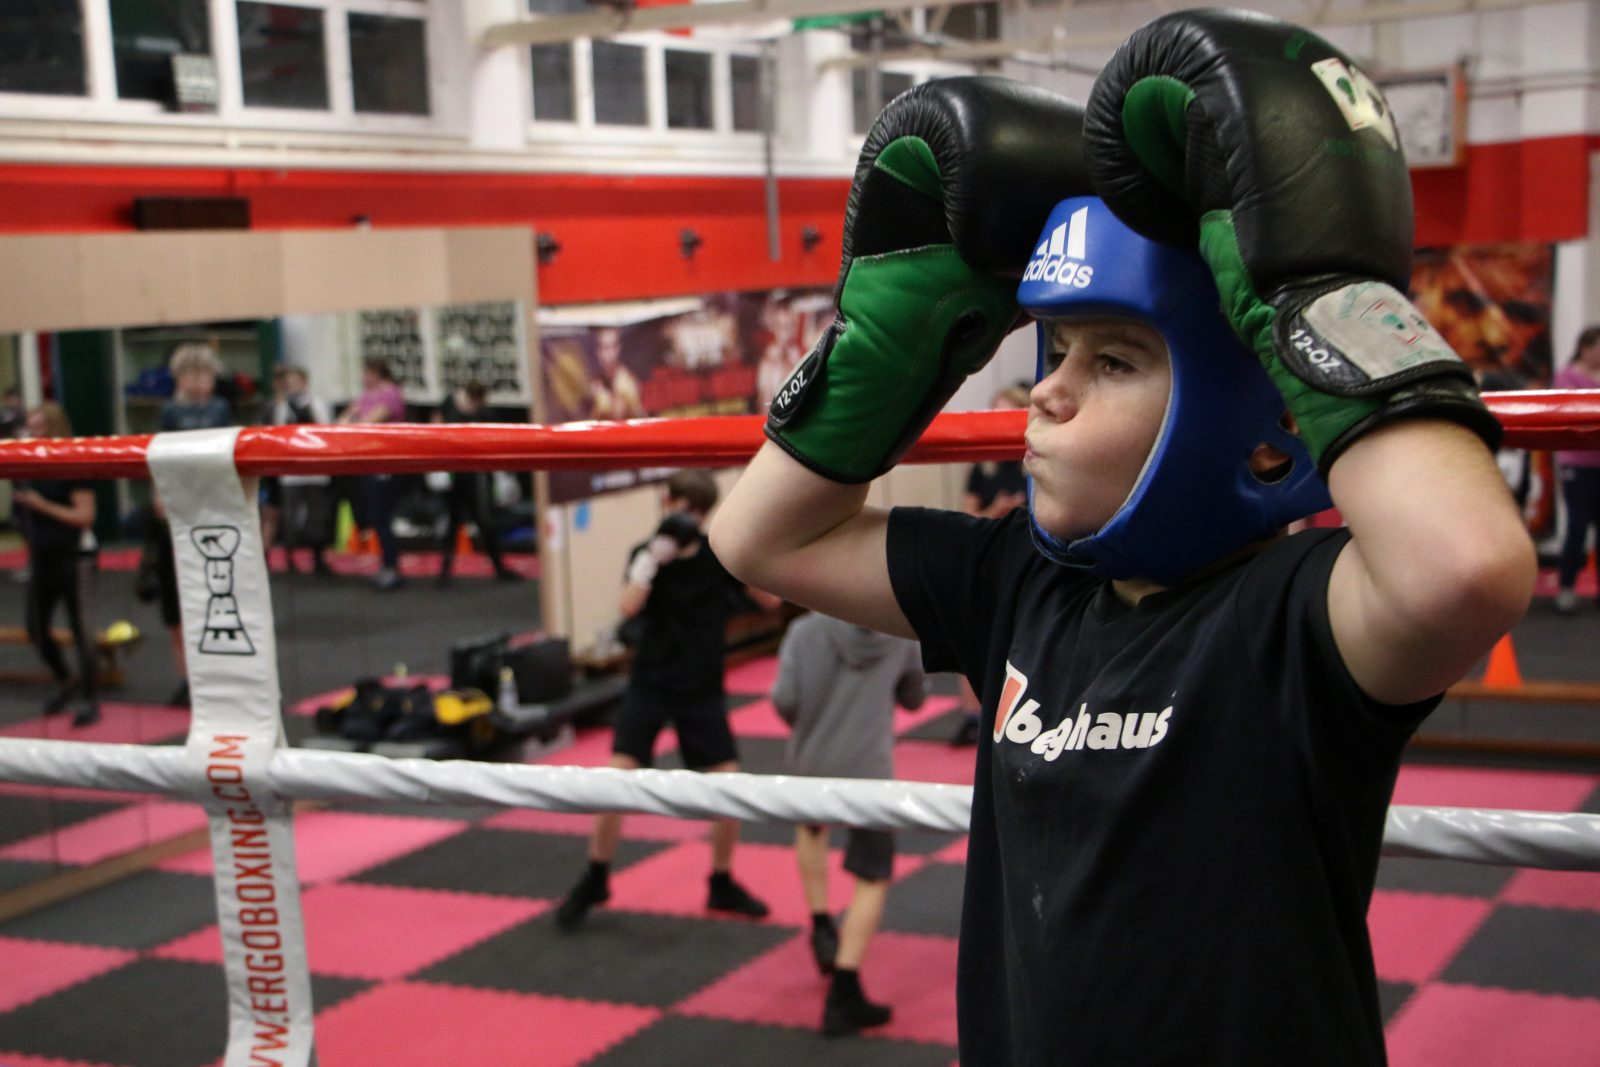 A young person wearing a blue boxing headguard and black and green boxing gloves holds their hands on top of their head in a boxing ring. In the background two people are boxing on a black and red chequered floor.